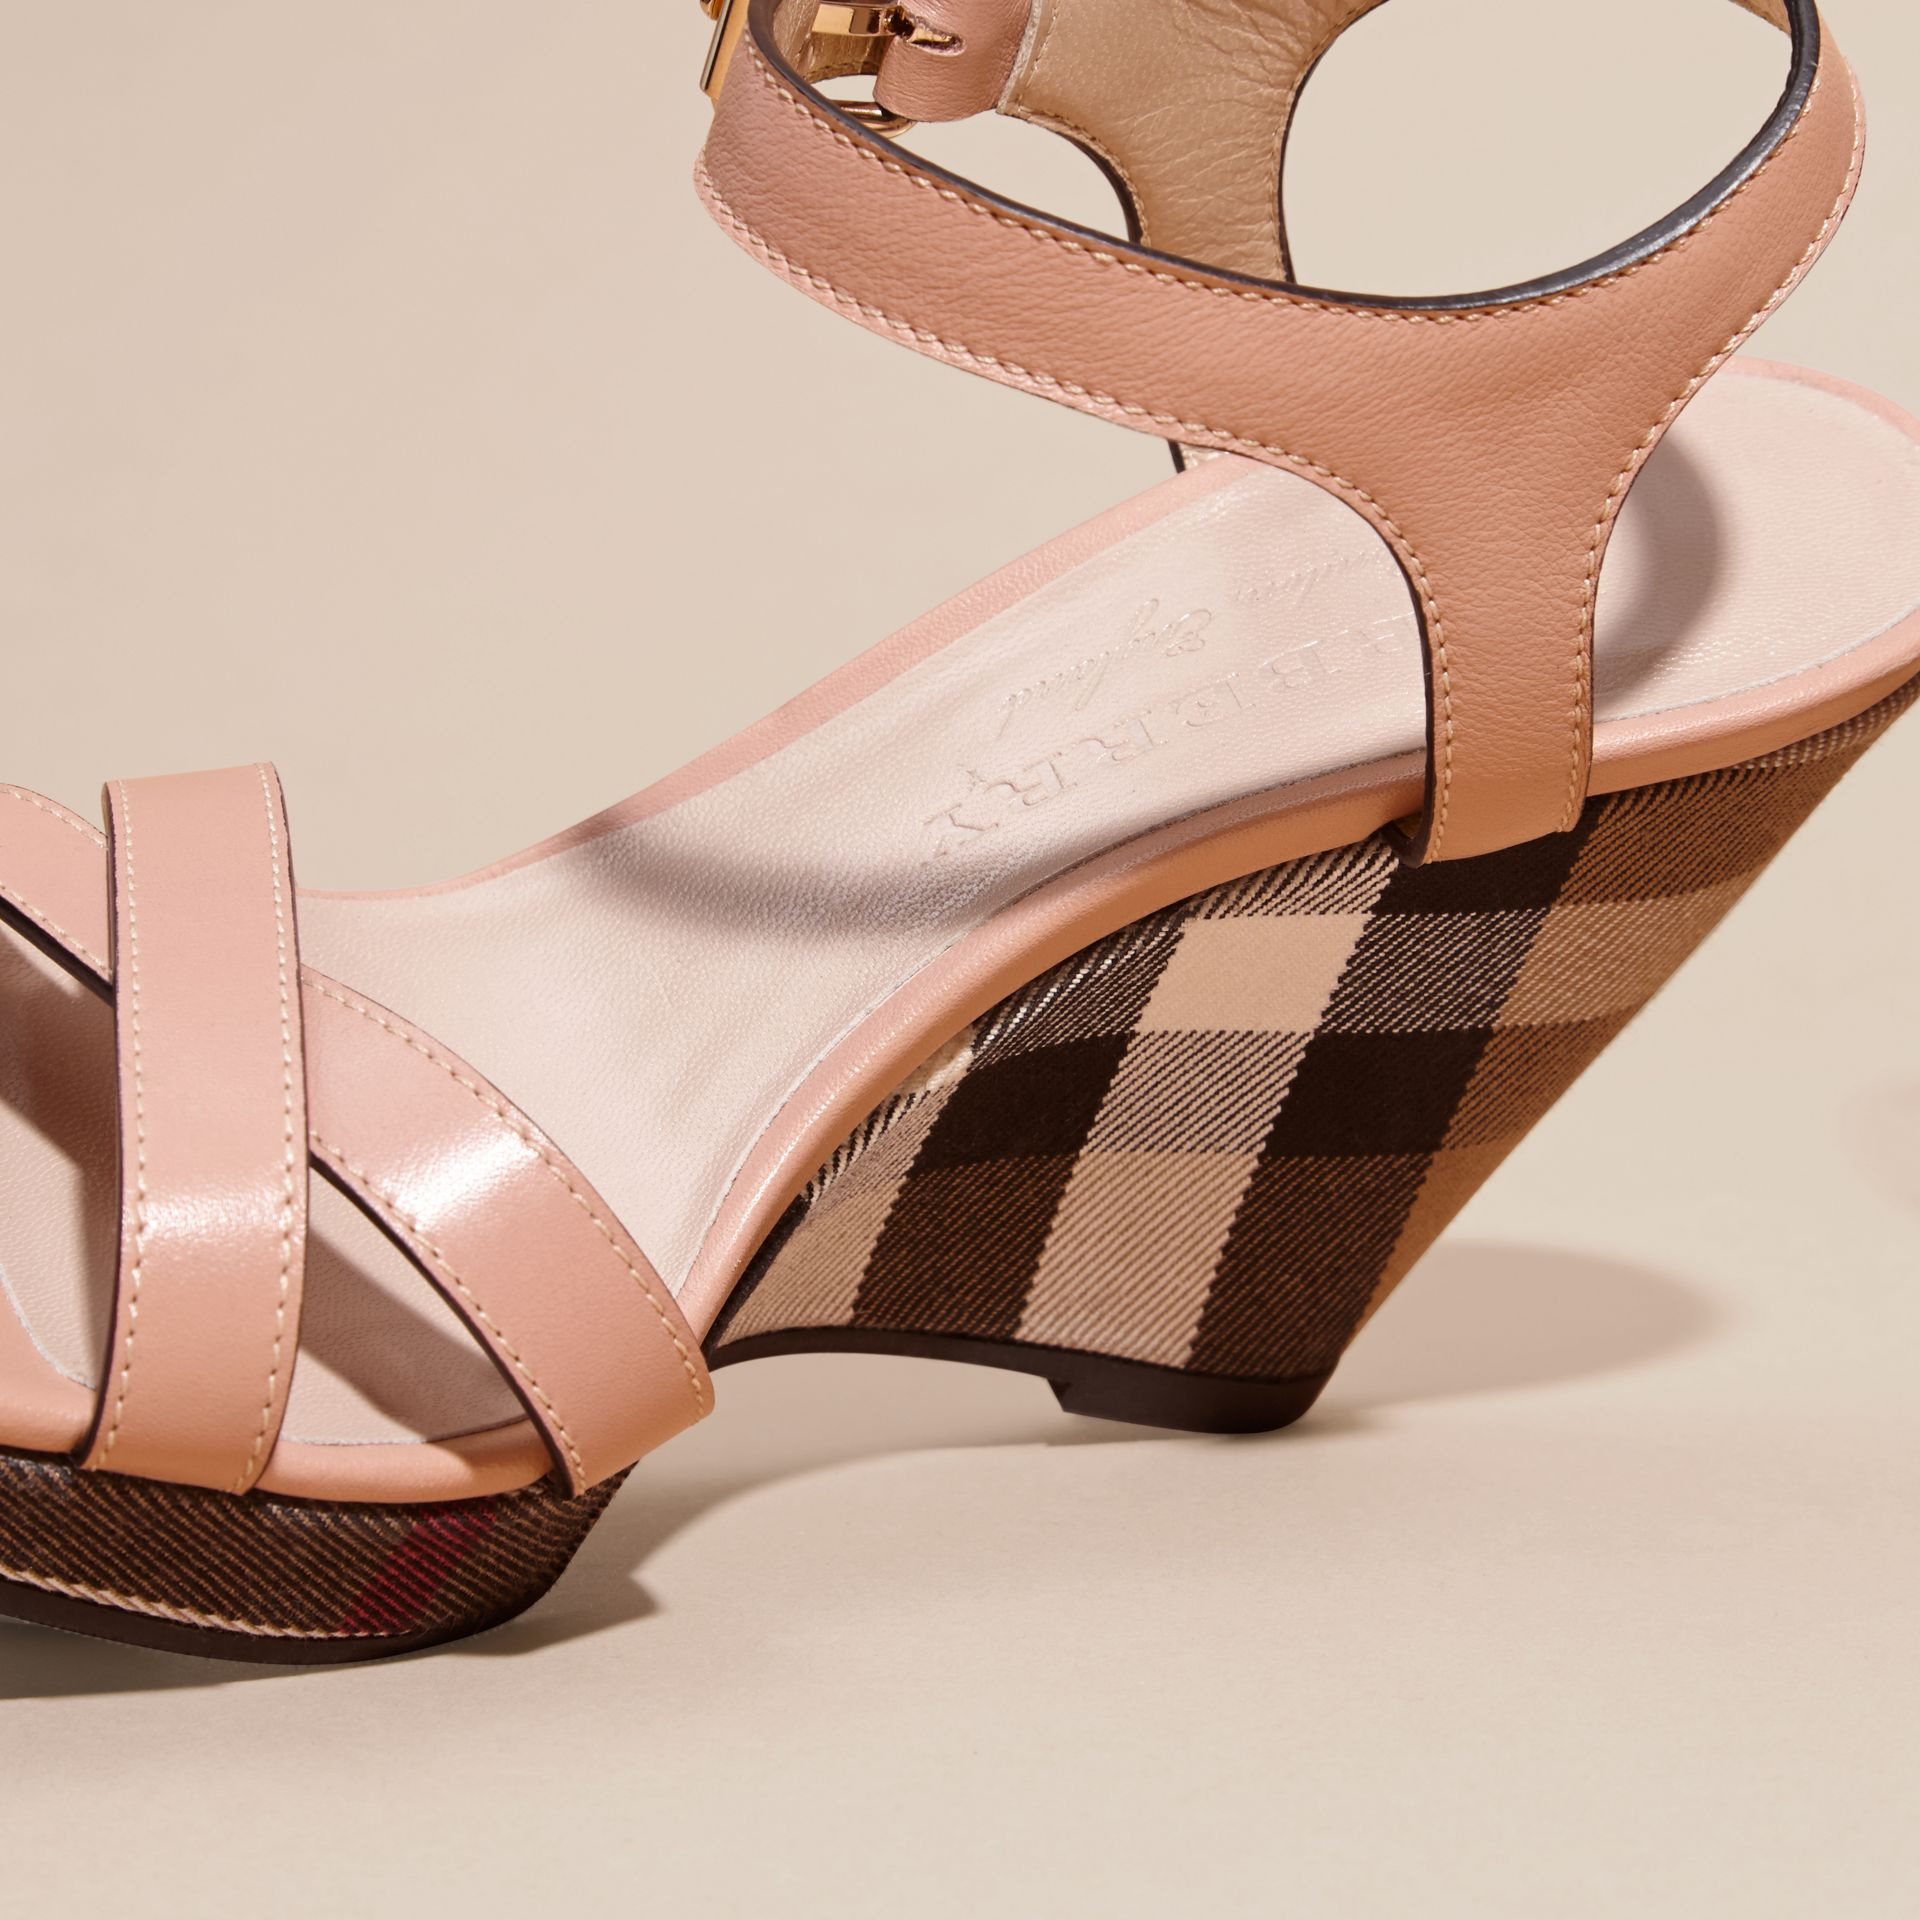 House Check Detail Leather Wedge Sandals - Women | Burberry - gallery image 5